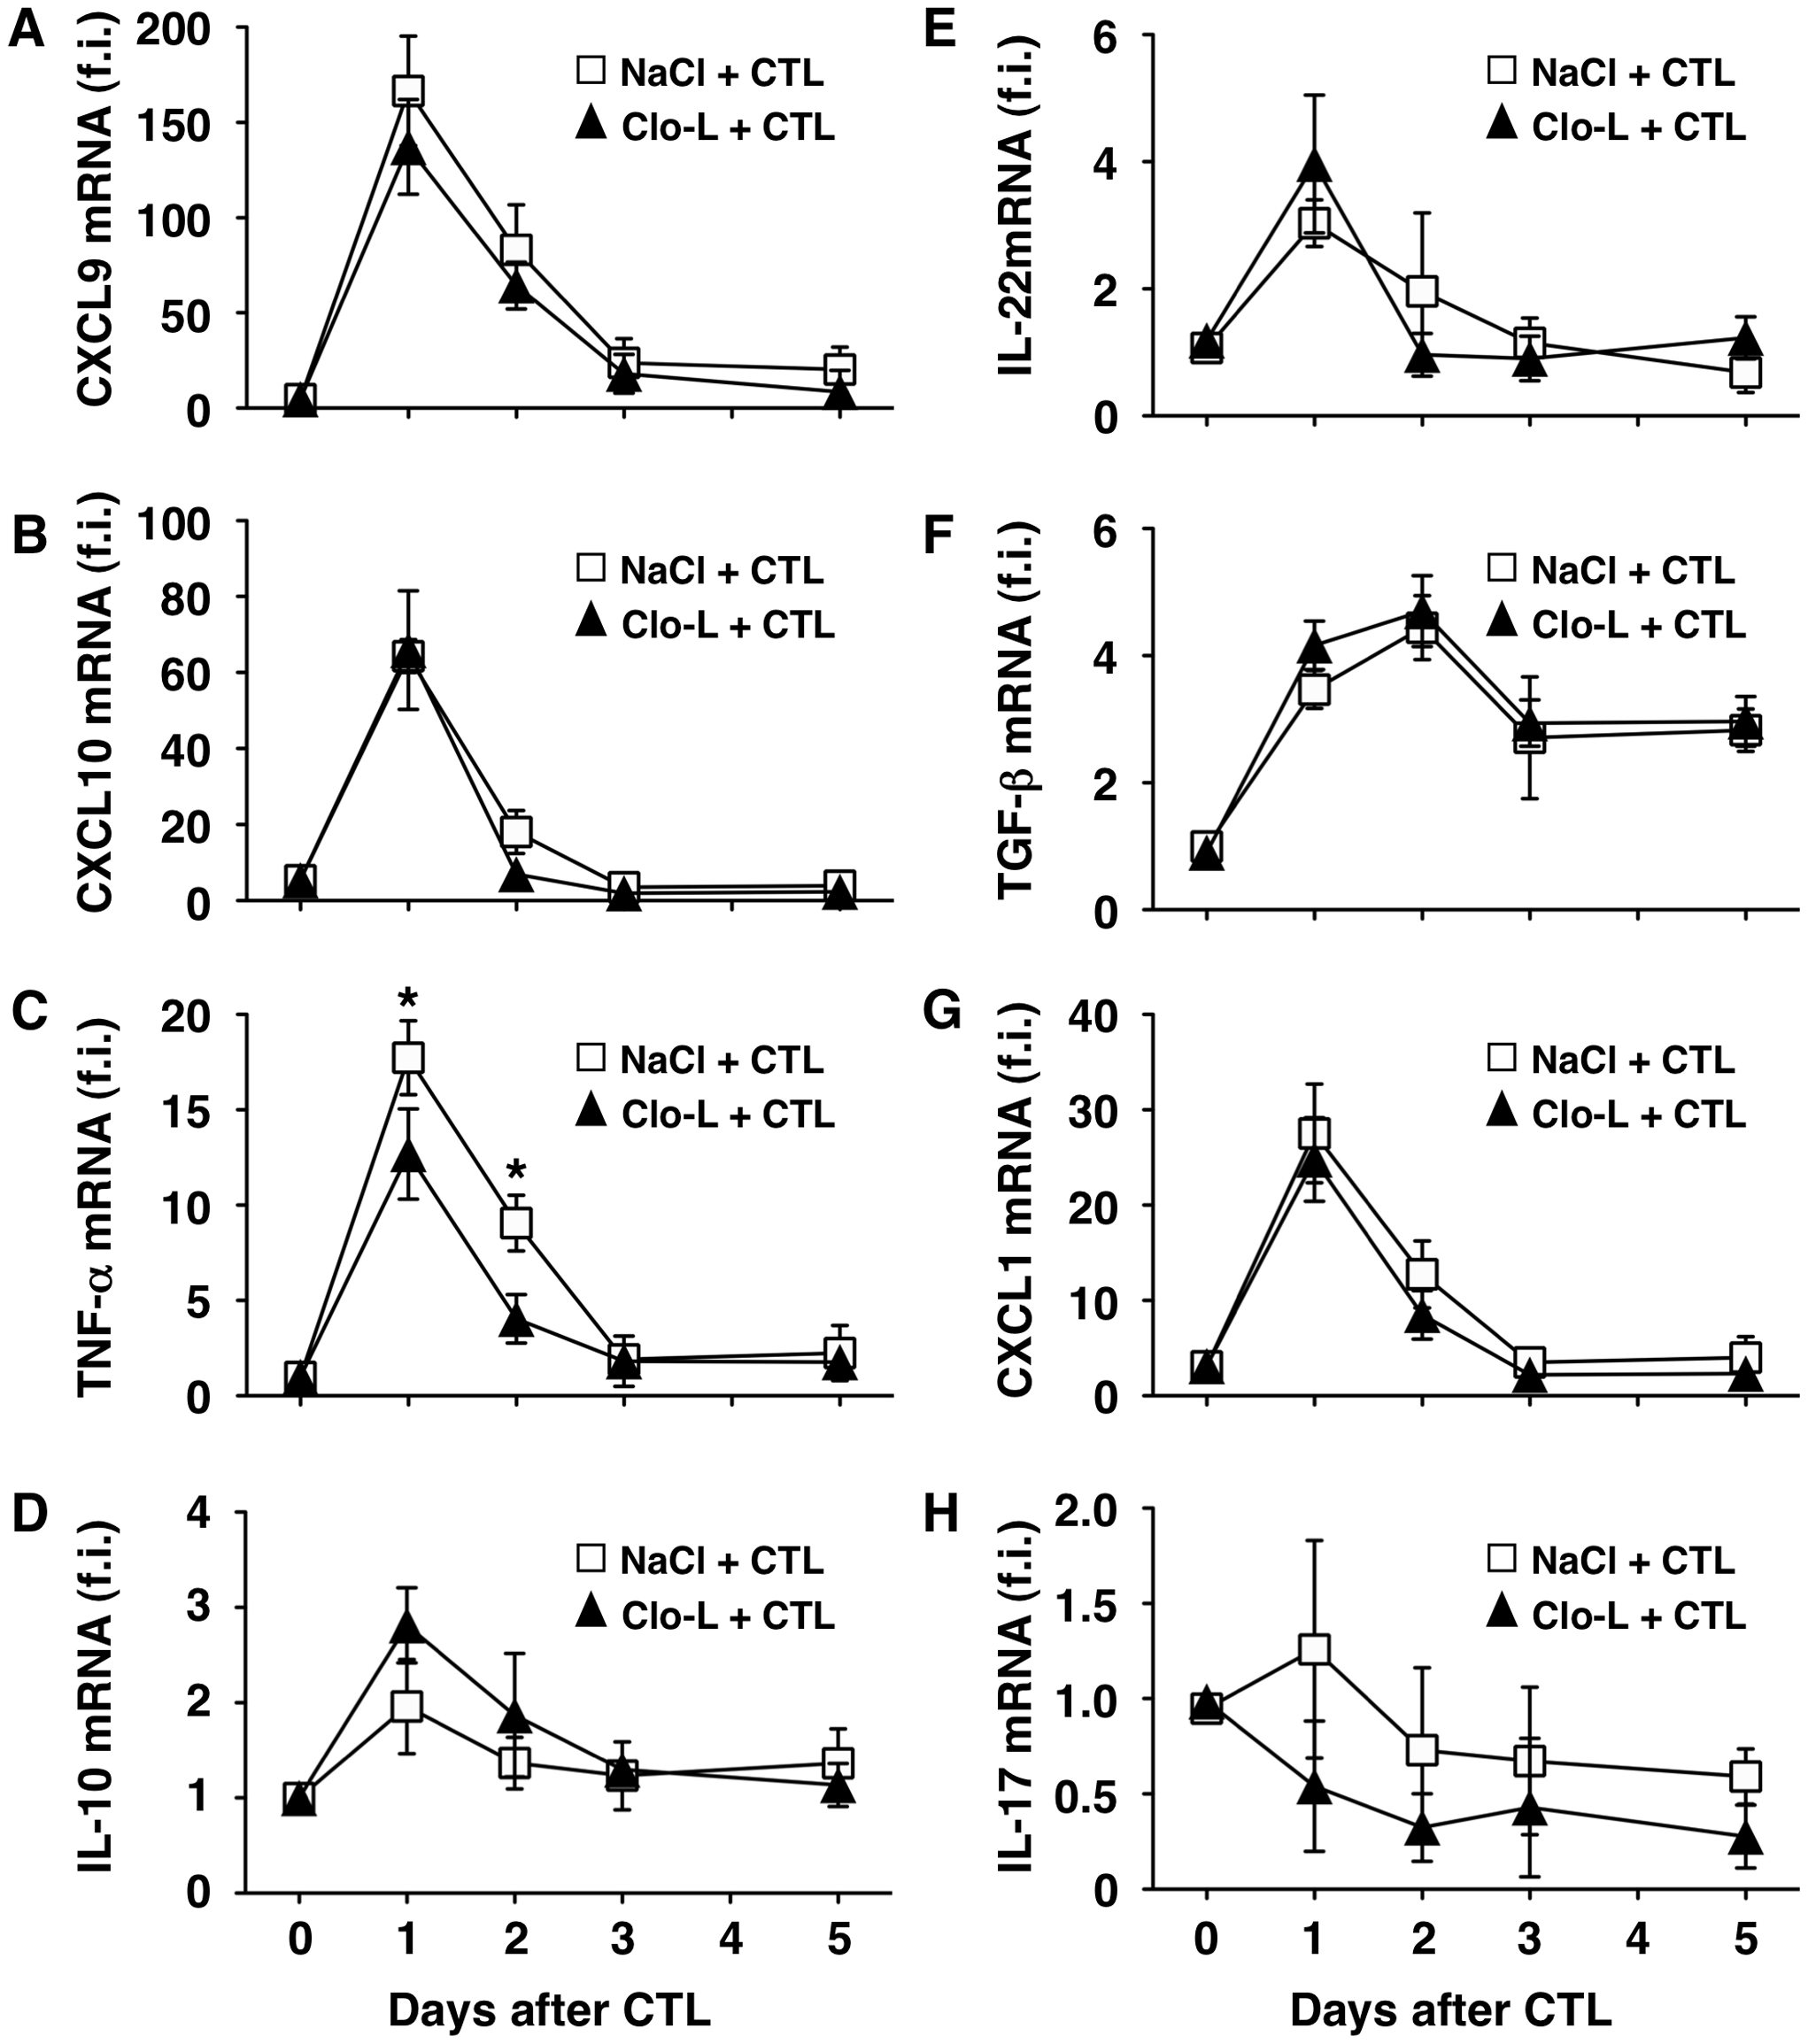 Clo-L treatment does not affect the hepatic gene expression of CXCL9, CXCL10, IL-10, IL-22, TGF-β, CXCL1 or IL-17 but reduces that of TNF-α.